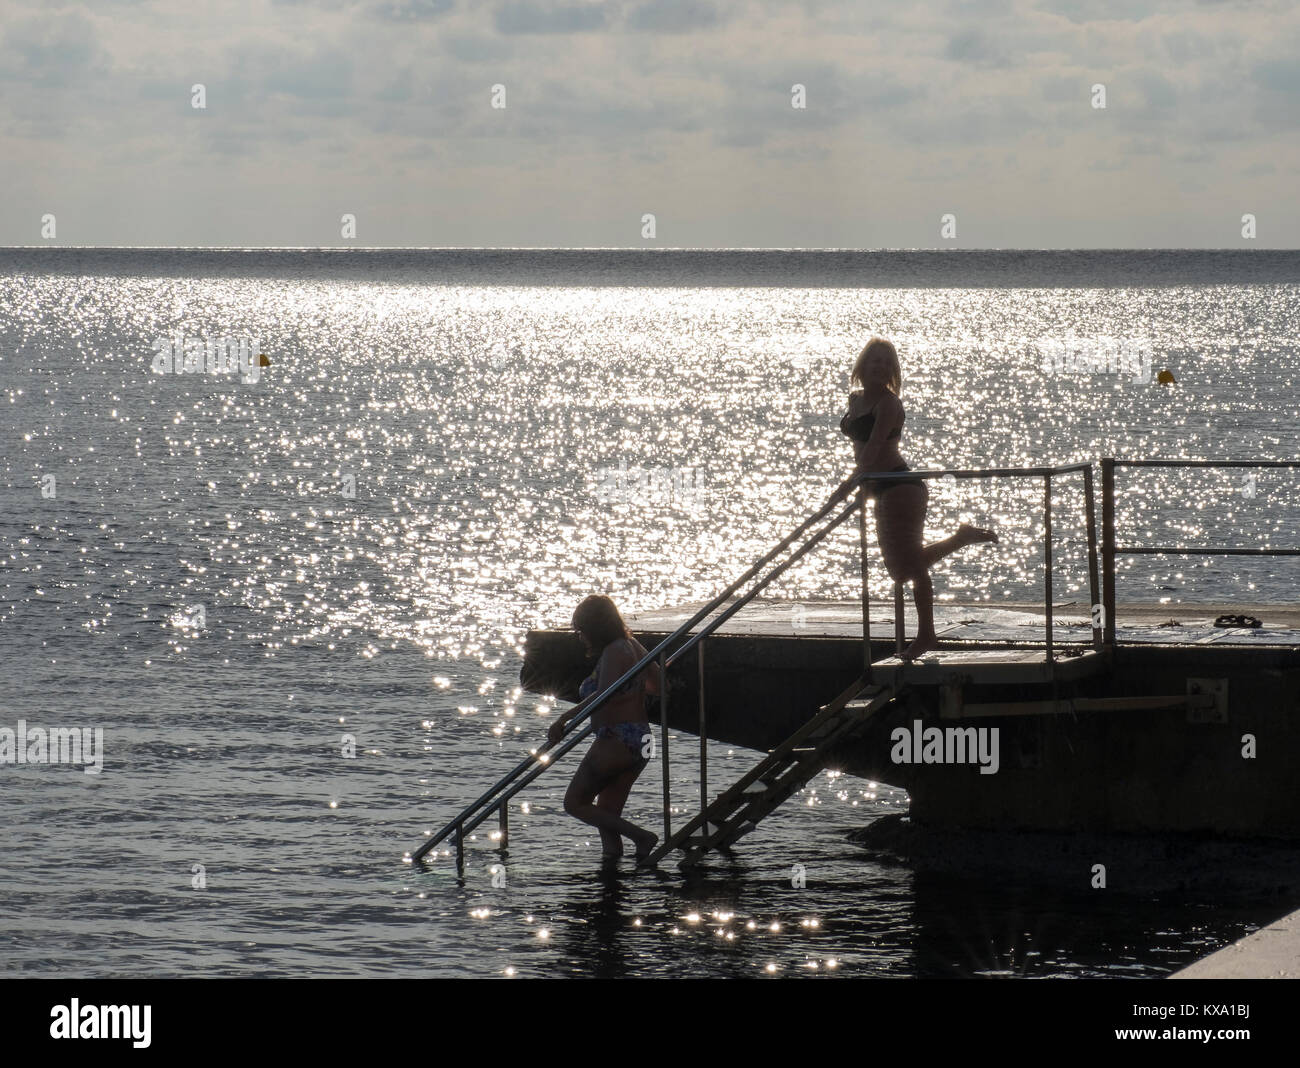 Two female swimmers in silhouette enter the water on Kato Paphos seafront, Paphos, Cyprus. - Stock Image